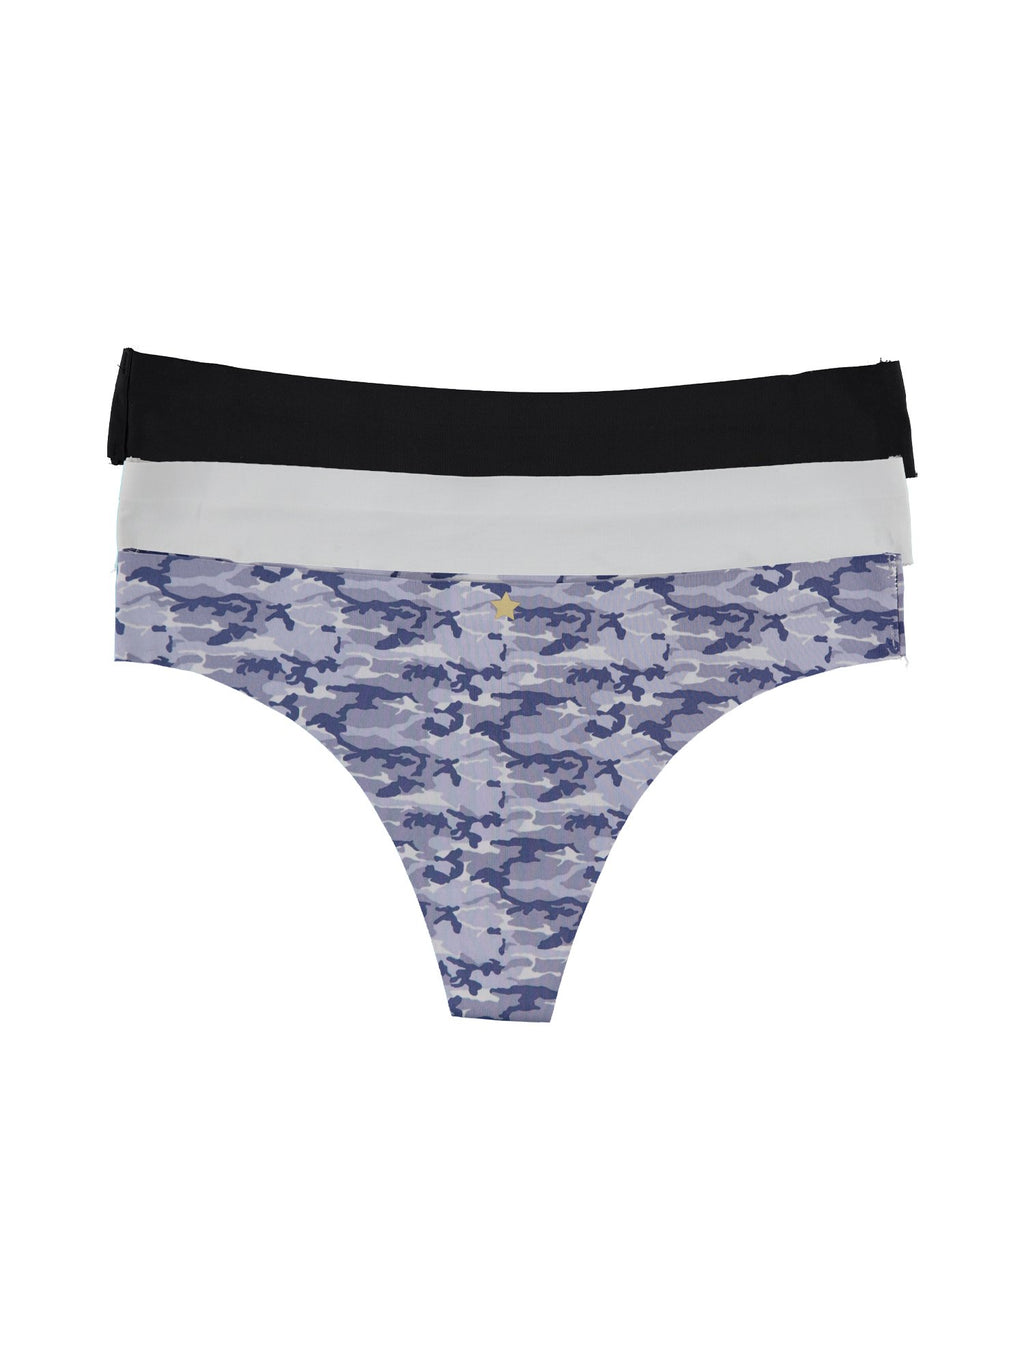 dELiA's Women's Printed/Solid Laser Cut Thong G-String Underwear Panty Pack, Soft, Comfortable, Stretch, Seamless Panties Blue Camo Combo